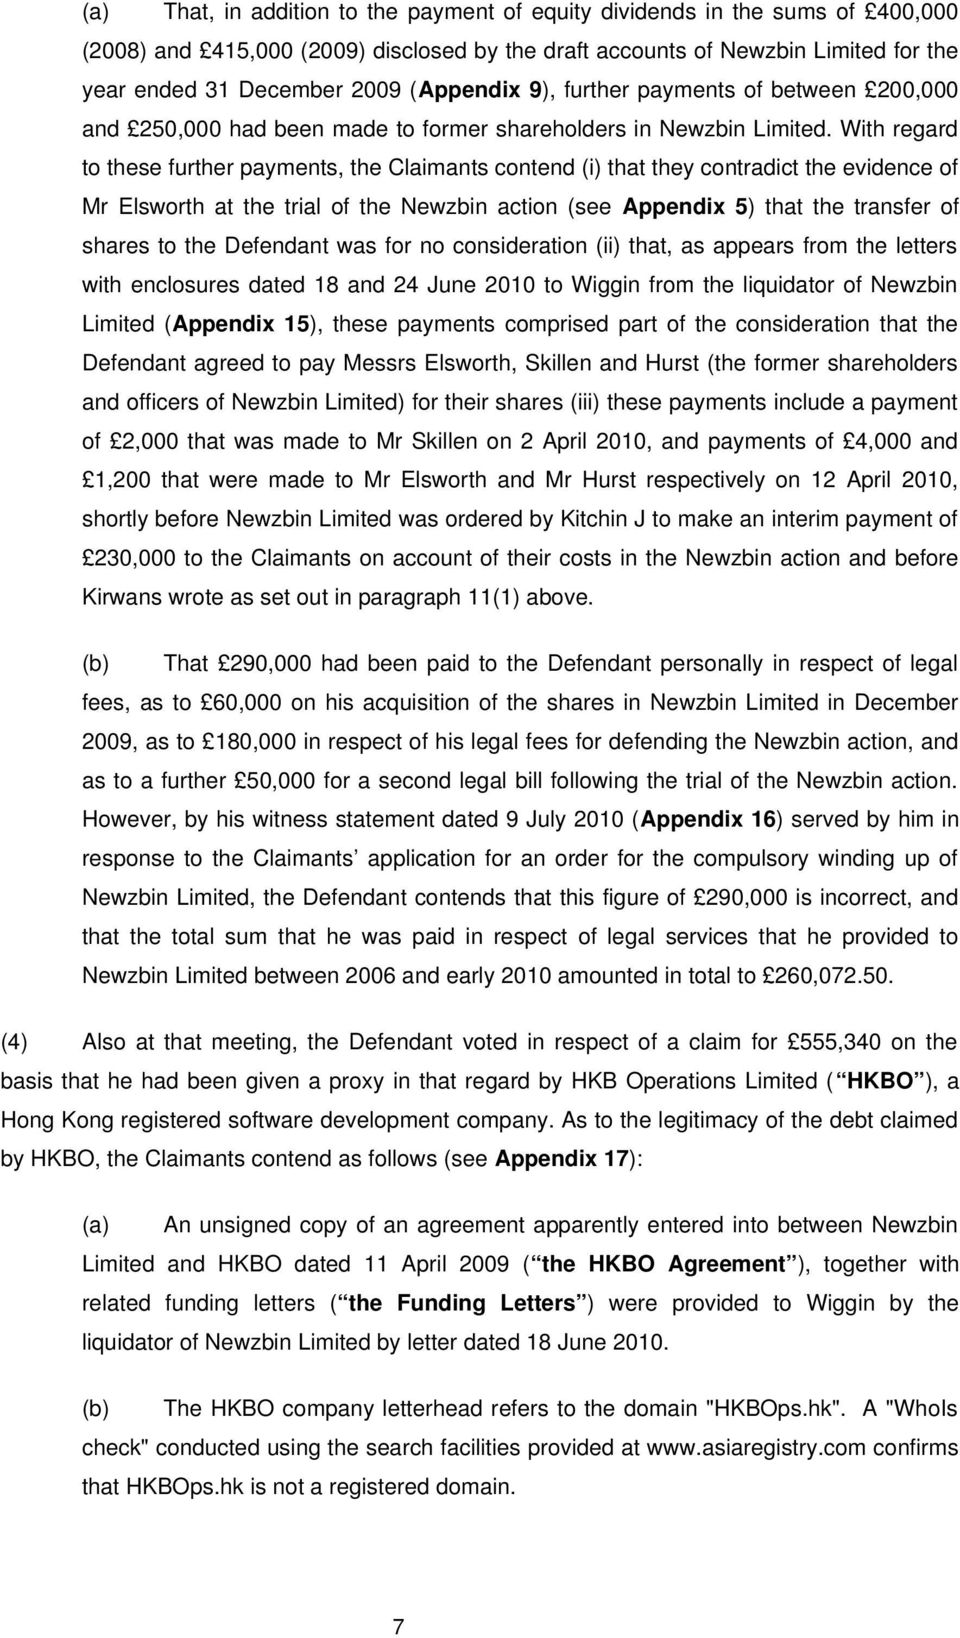 With regard to these further payments, the Claimants contend (i) that they contradict the evidence of Mr Elsworth at the trial of the Newzbin action (see Appendix 5) that the transfer of shares to